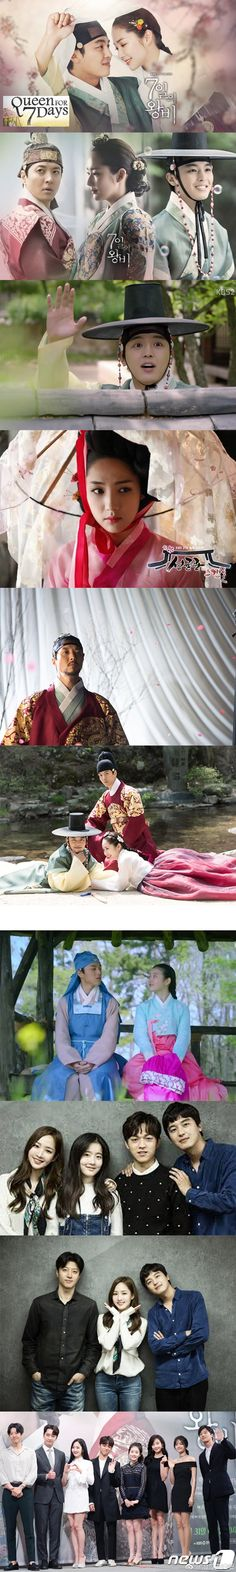 Queen For Seven Days (7일의 왕비) Kdrama 2017 - 20 episodes / Park Min-Young / Yeon Woo-Jin / Lee Dong-Gun